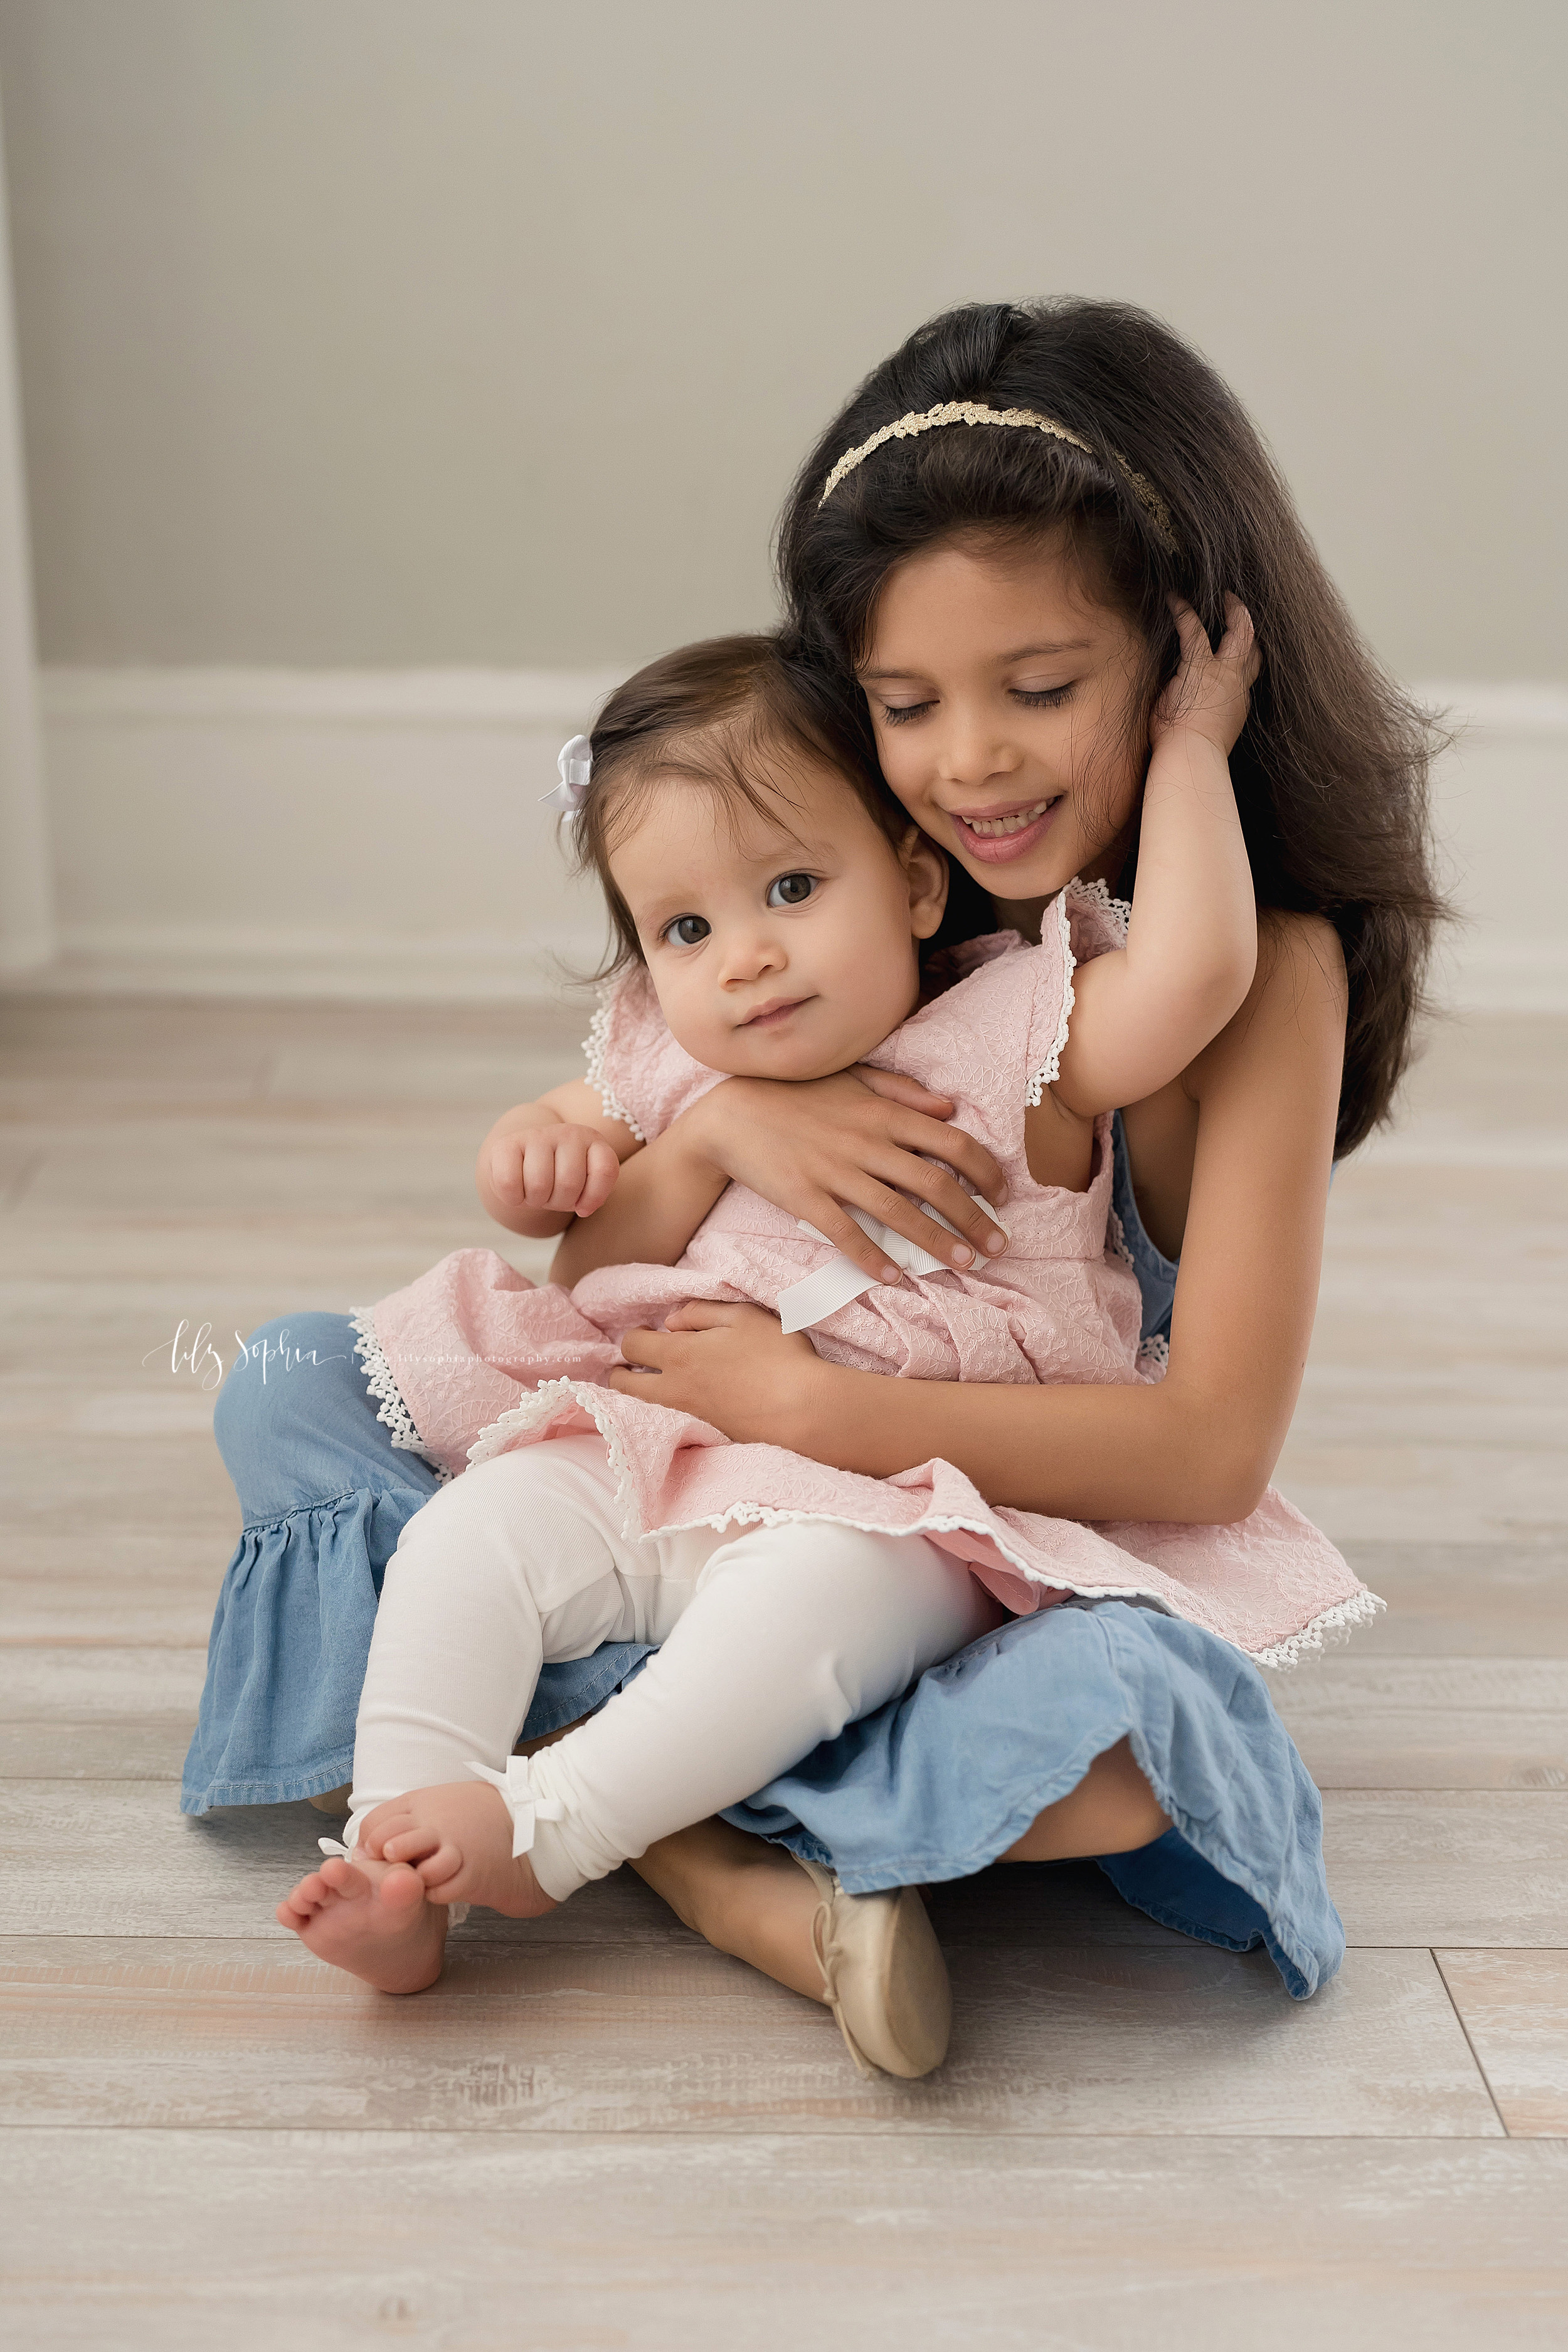 Sibling photo of two sisters as the older sister sits with her nine month old baby sister on her lap adoring her as her baby sister plays in her hair and they sit on the floor of an Atlanta studio in natural light.